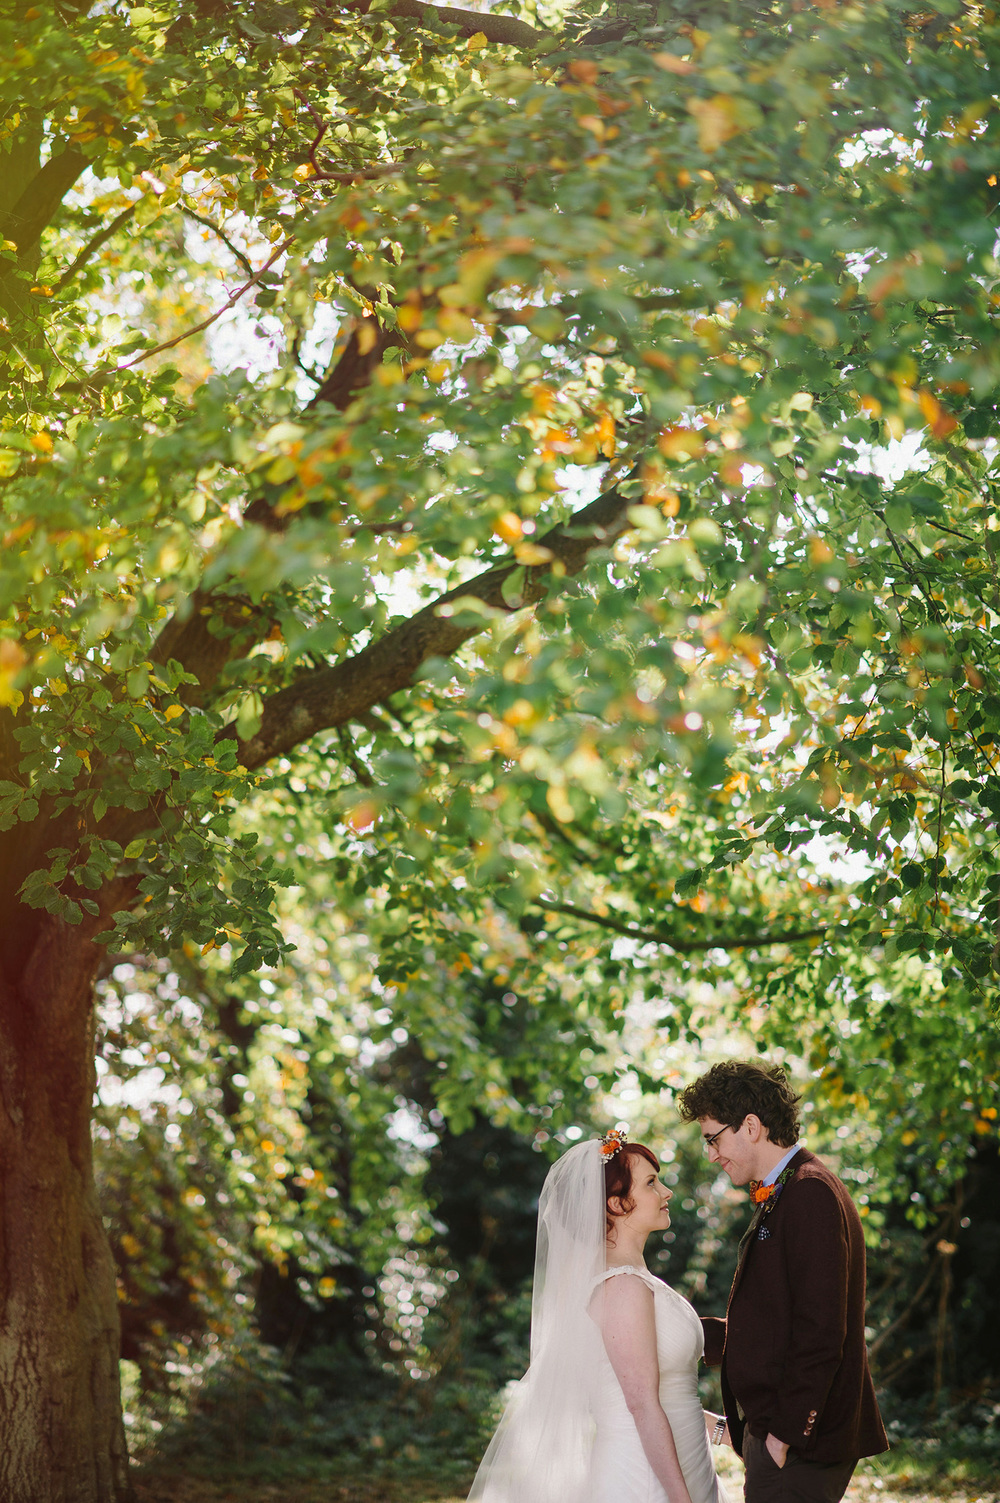 autumn wedding ireland.JPG